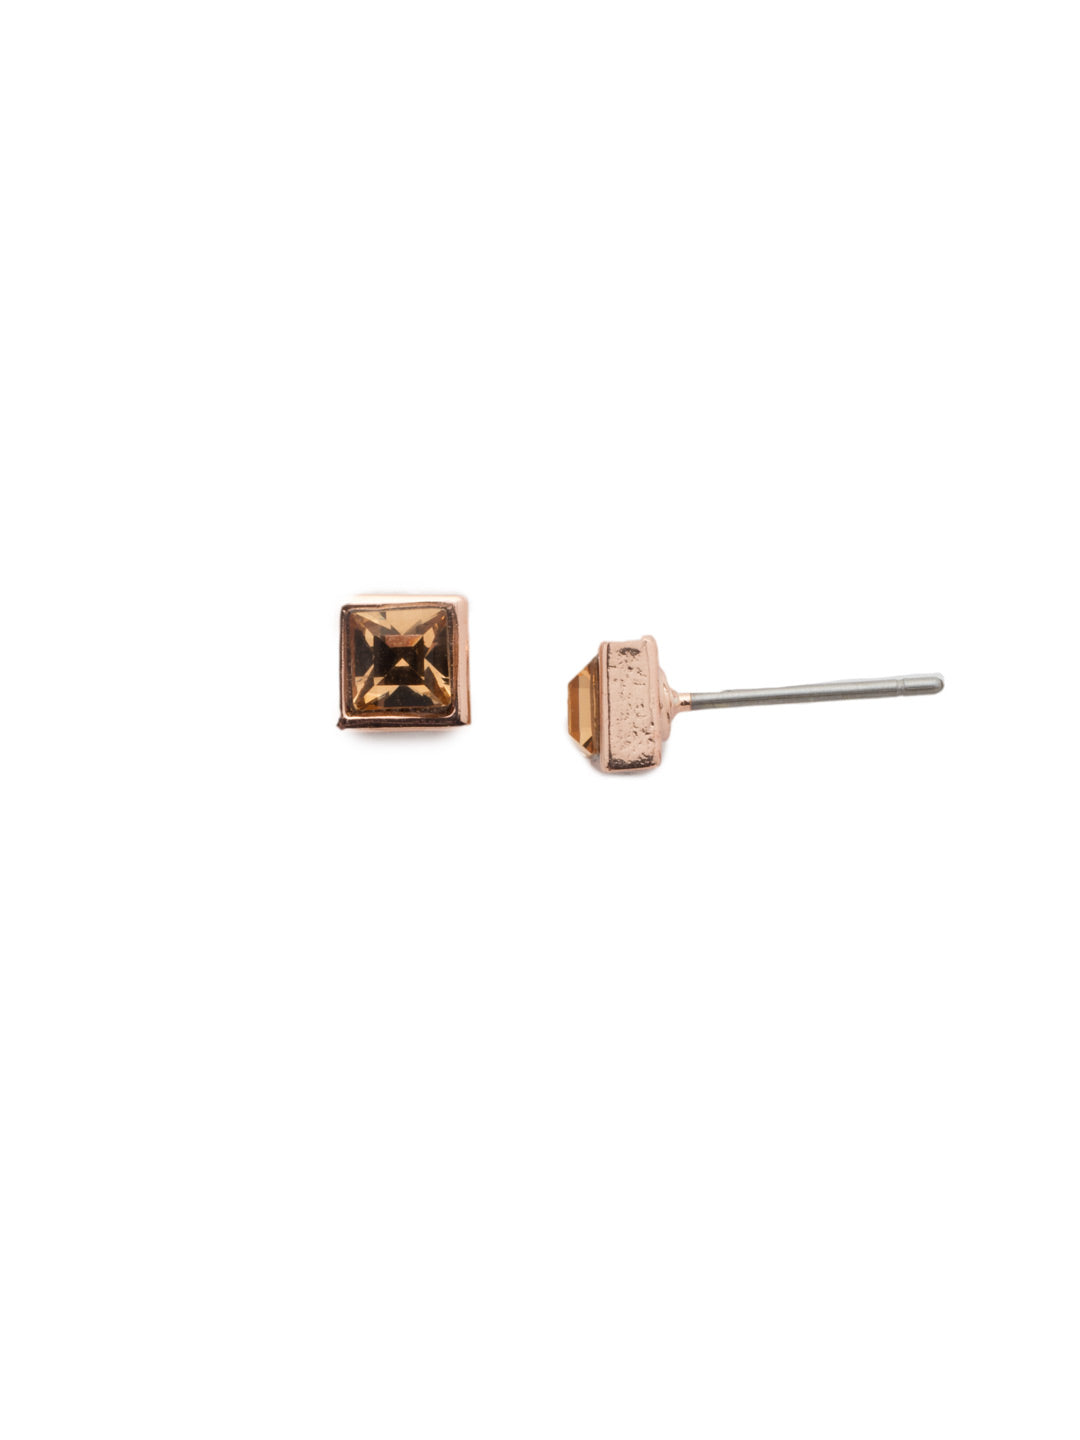 Square Stuff Stud Earrings - ECM53RGROG